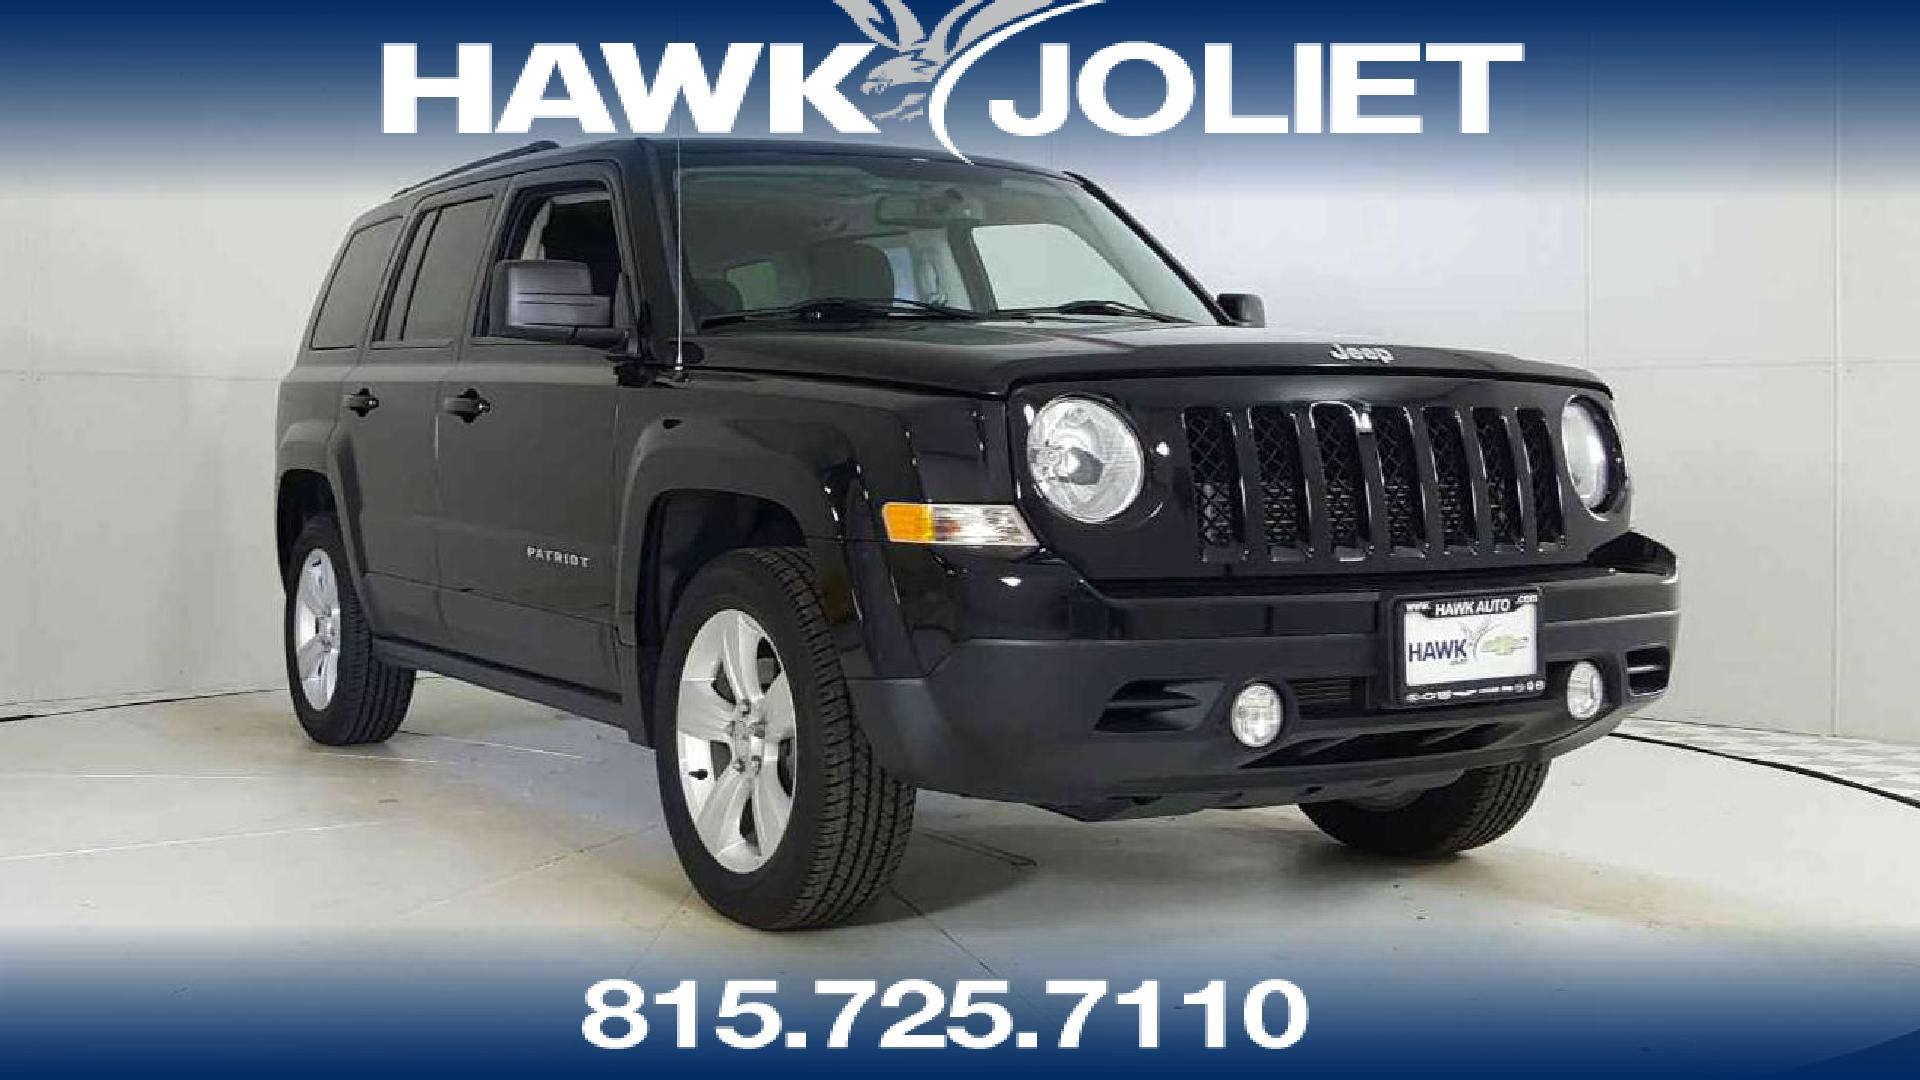 2014 Jeep Patriot Vehicle Photo In Joliet, IL 60435